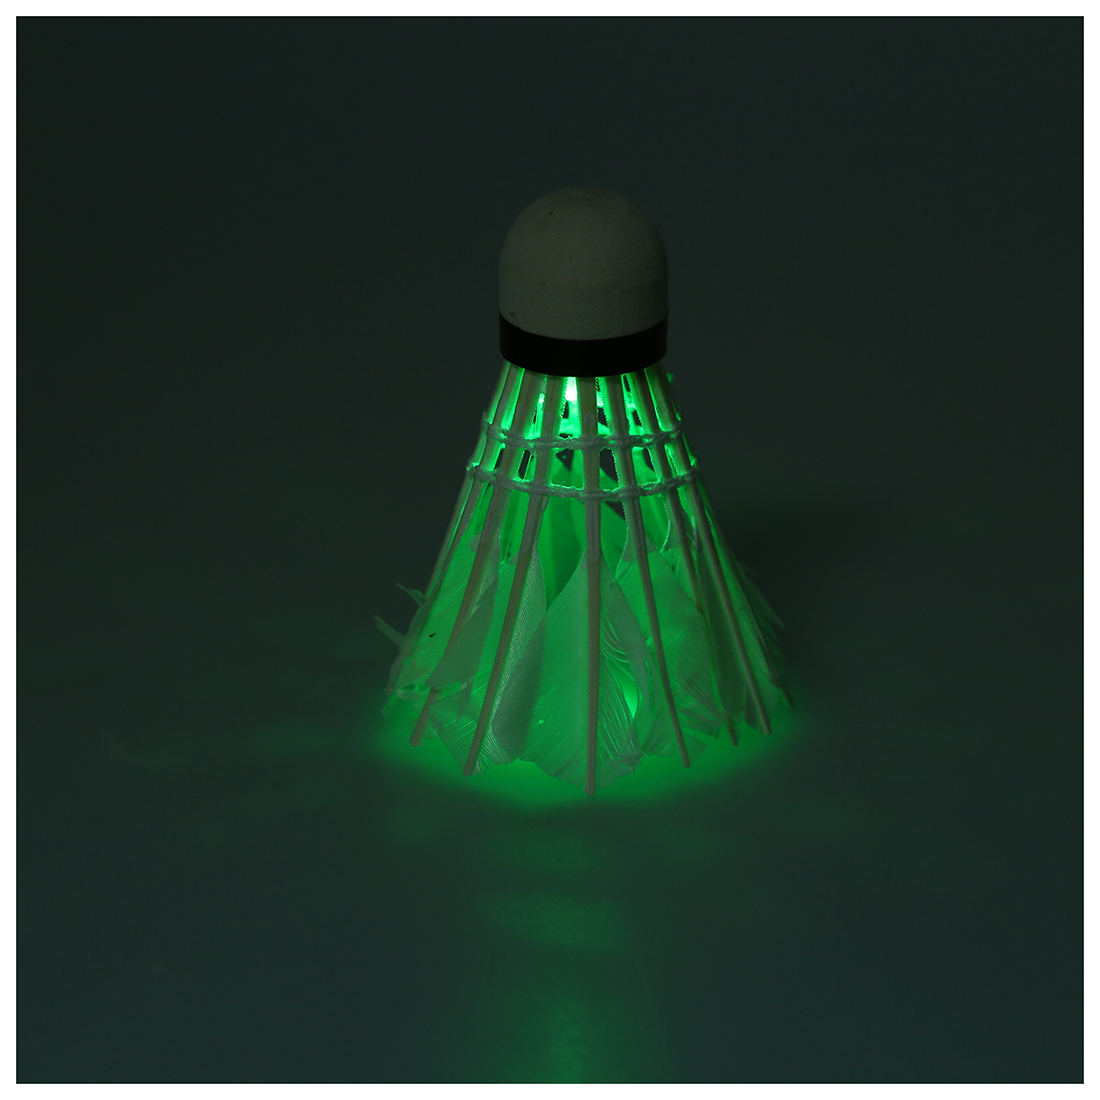 5*Dark Night LED Badminton Shuttlecock Birdies Lighting Green